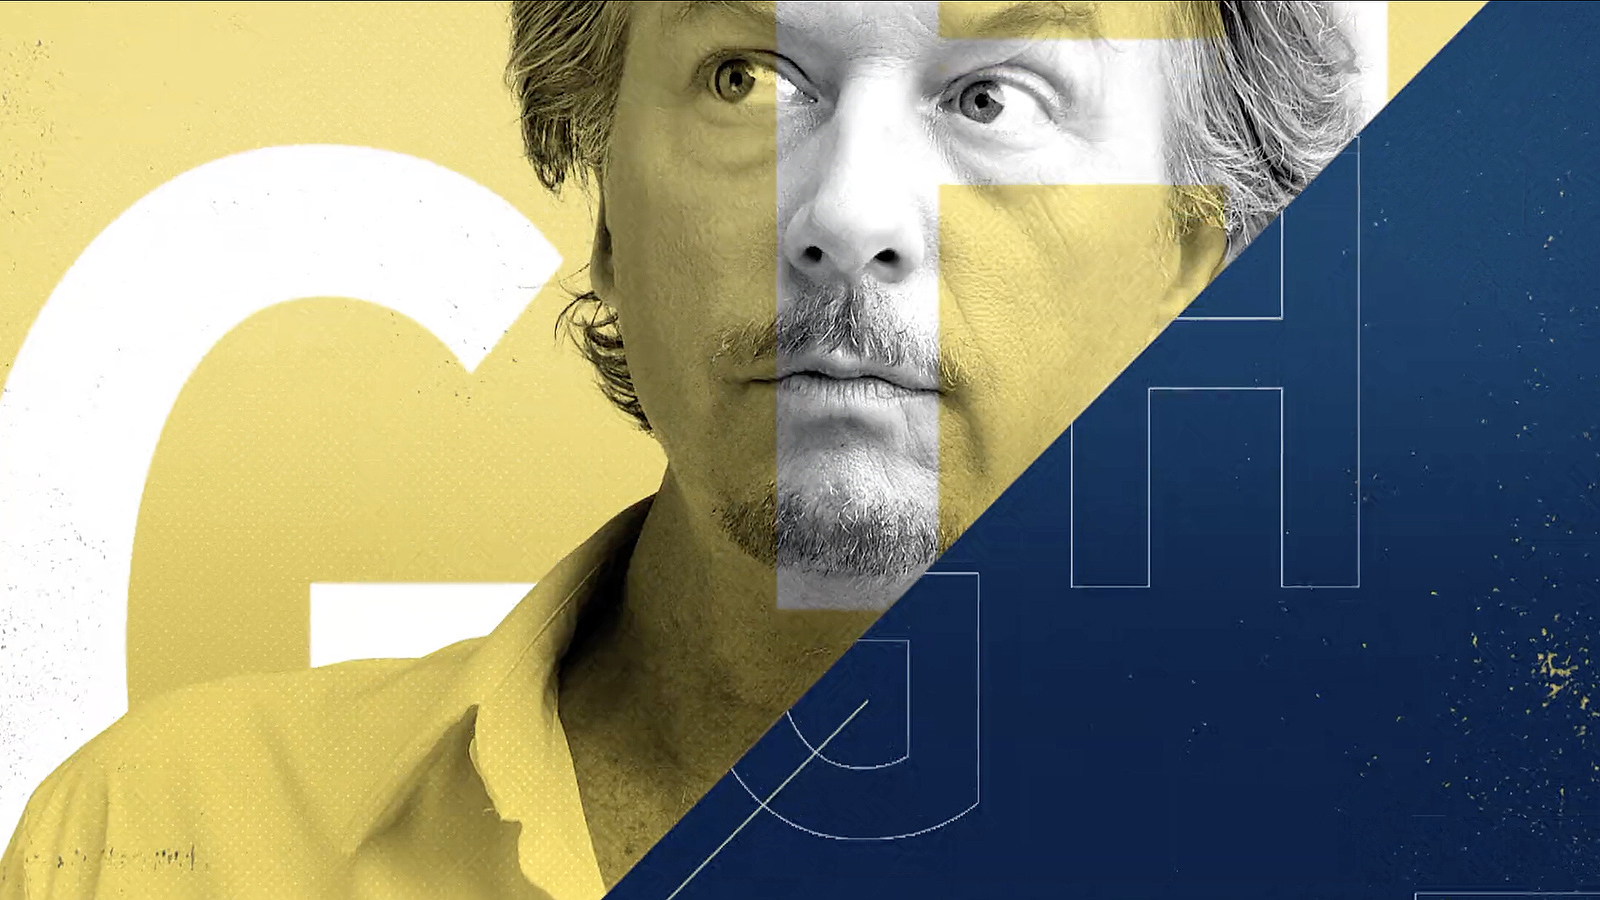 NCS_Comedy-Central_David-Spade_LightsOut_Motion-Graphics_006